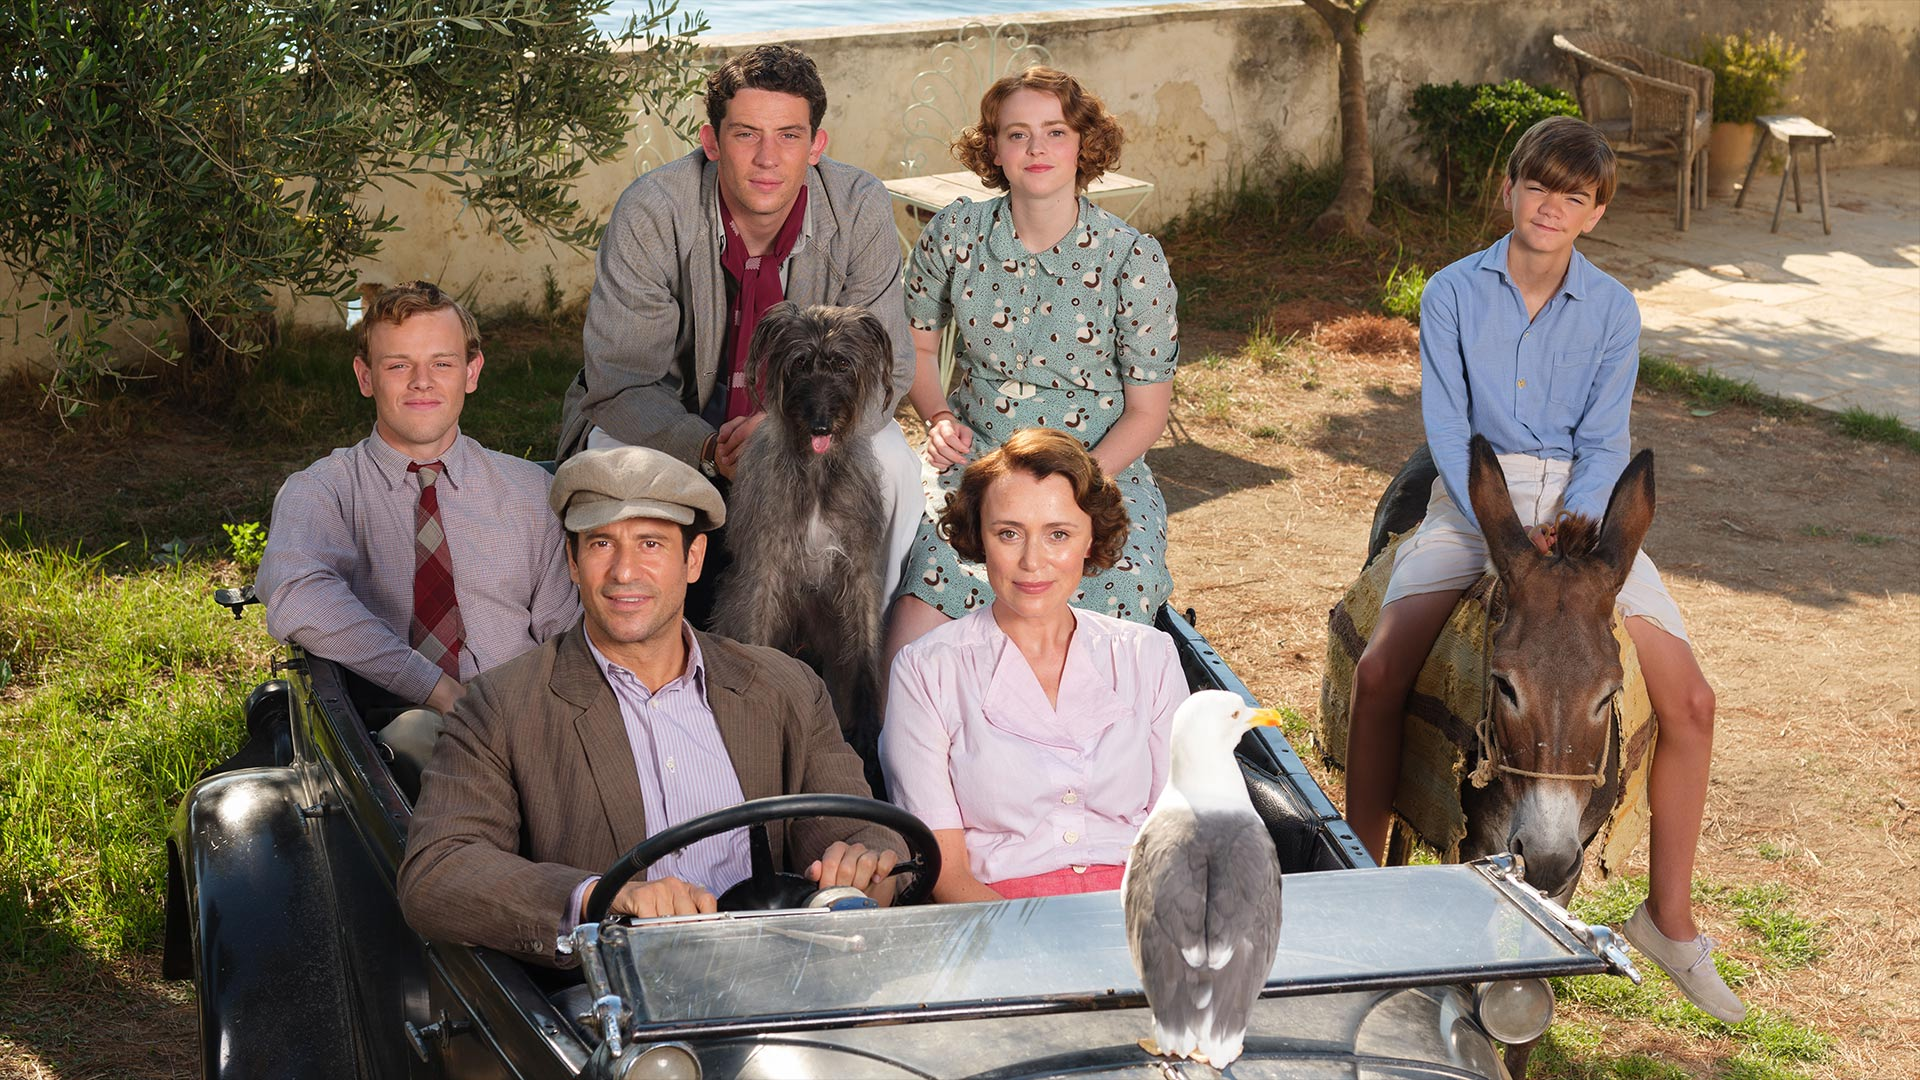 Leslie Durrell (CALLUM WOODHOUSE), Theo Stephanides (YORGOS KARAMIHOS), Lawrence Durrell (JOSH O'CONNOR), Louisa Durrell (KEELEY HAWES), Margo Durrell (DAISY WATERSTONE) & Gerald Durrell (MILO PARKER)